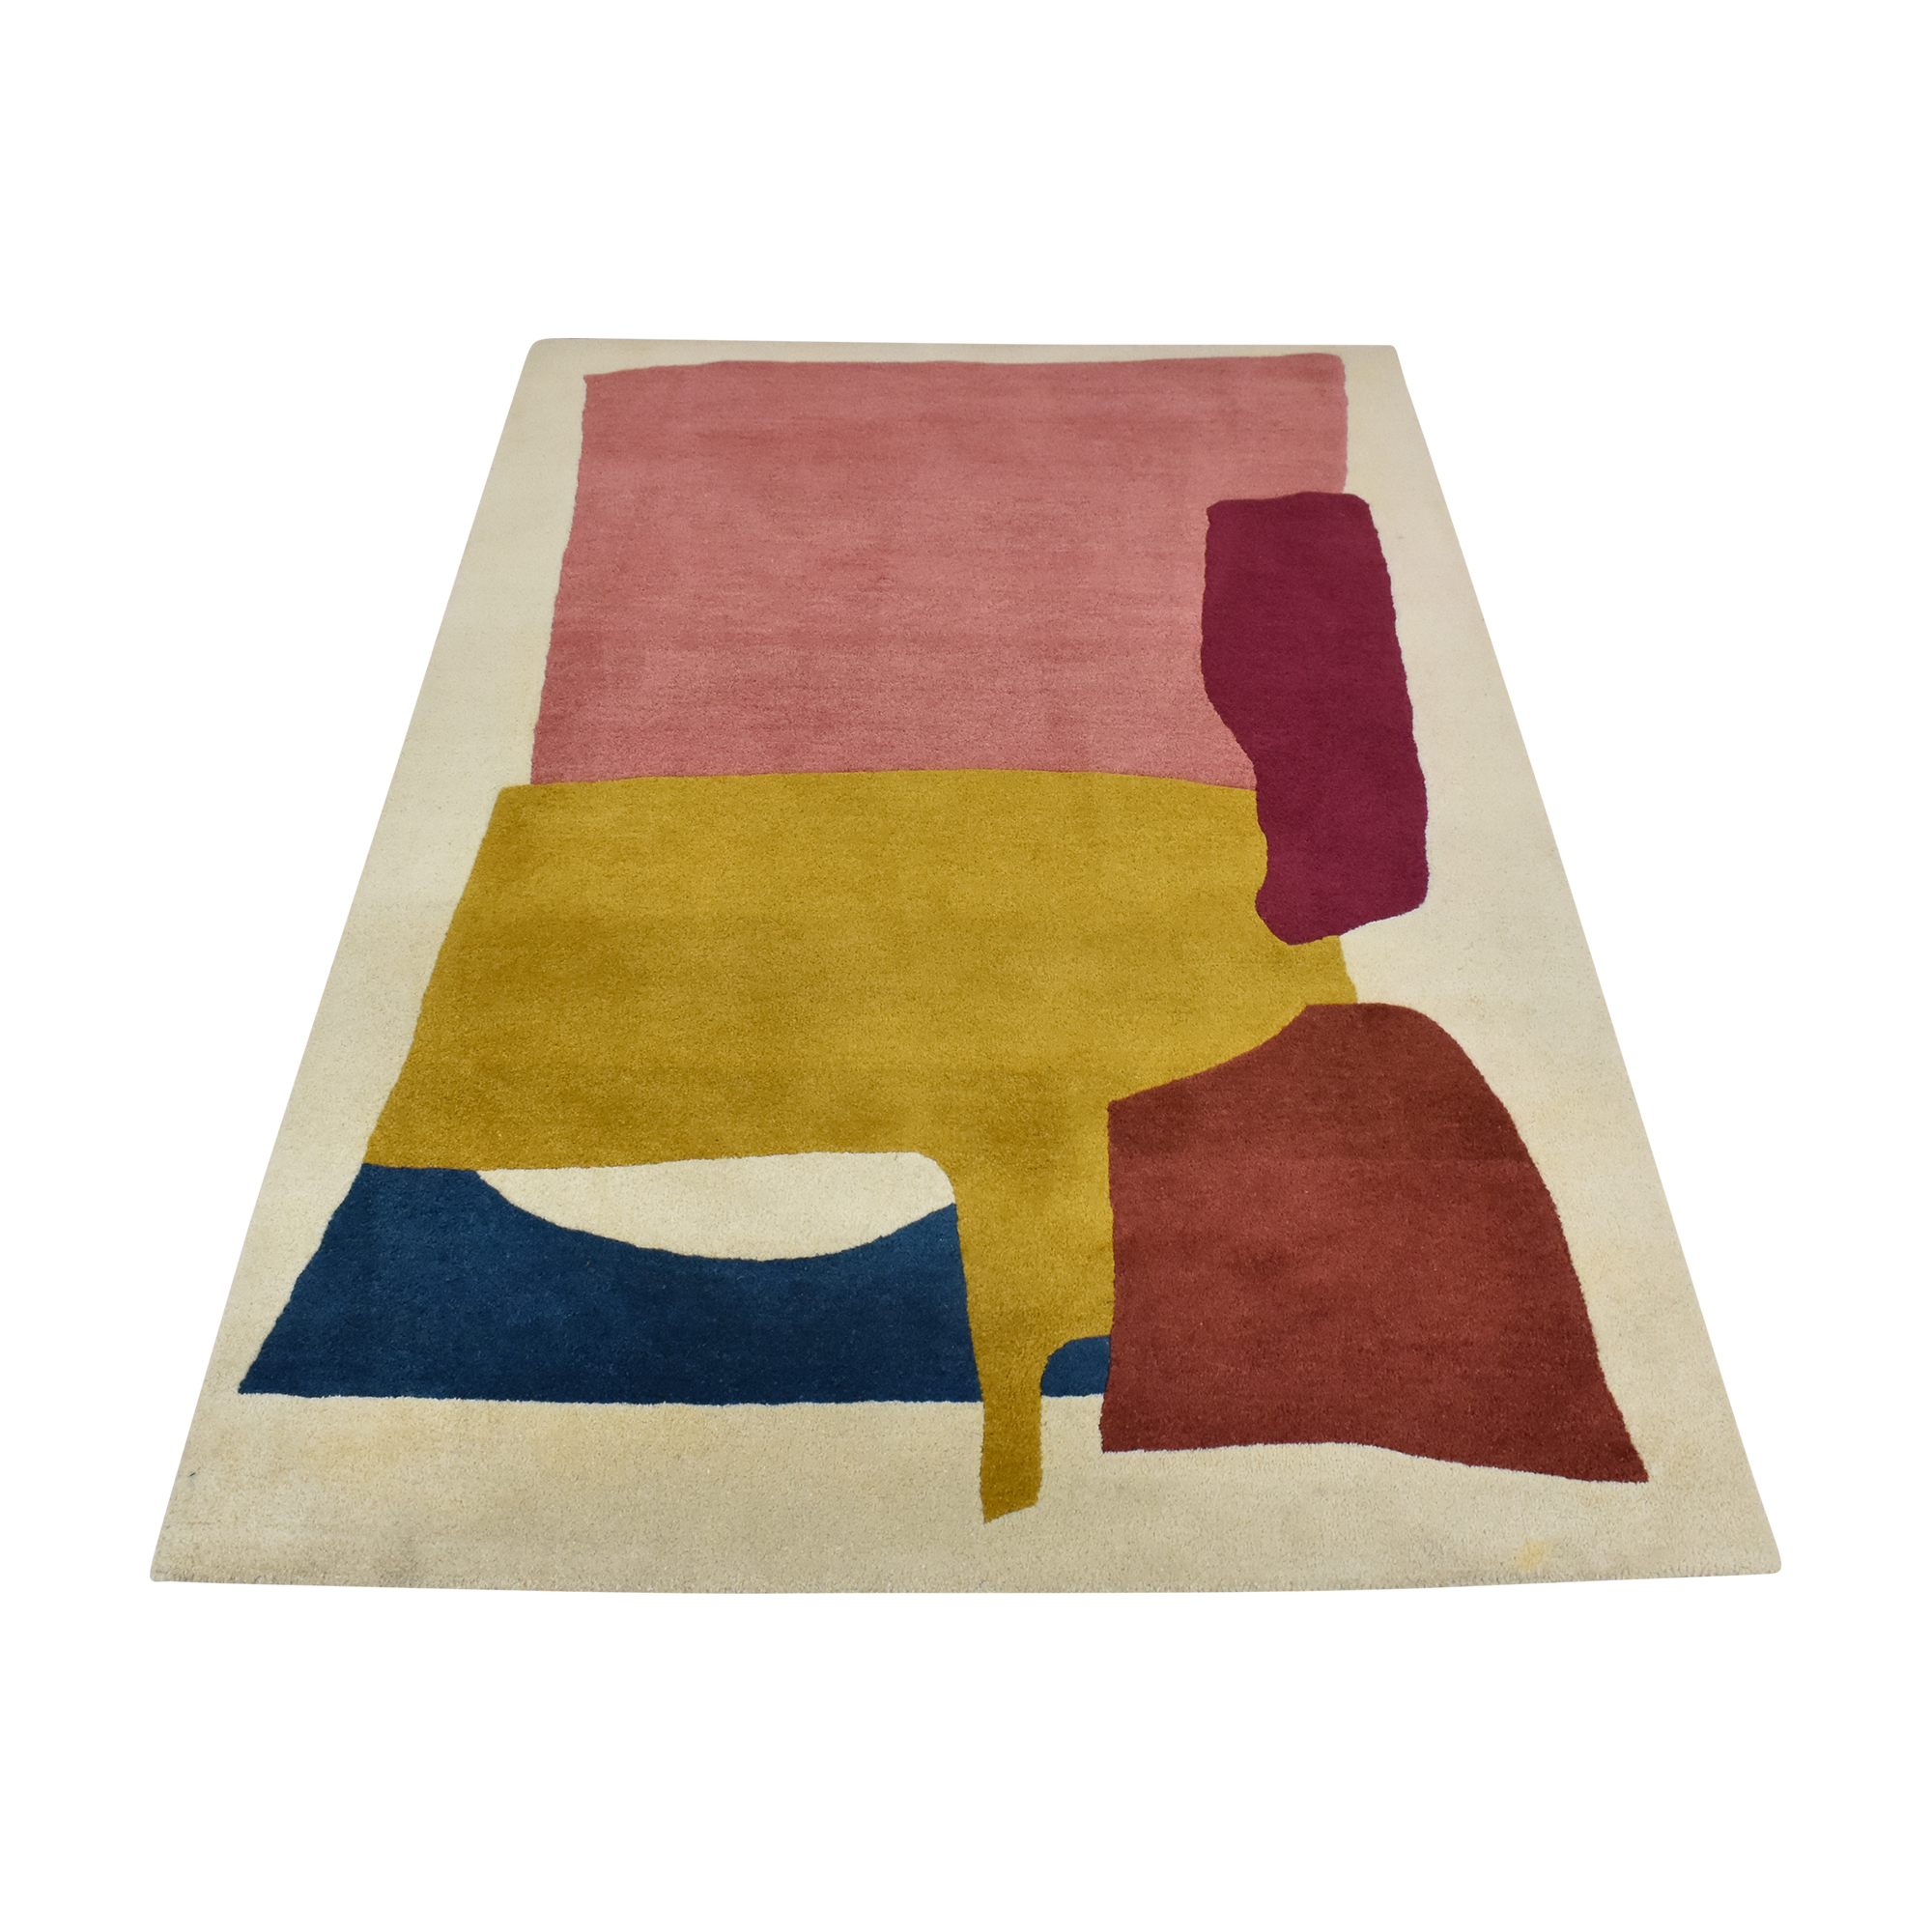 Crate & Barrel Crate & Barrel Joplin Multi Rug nyc